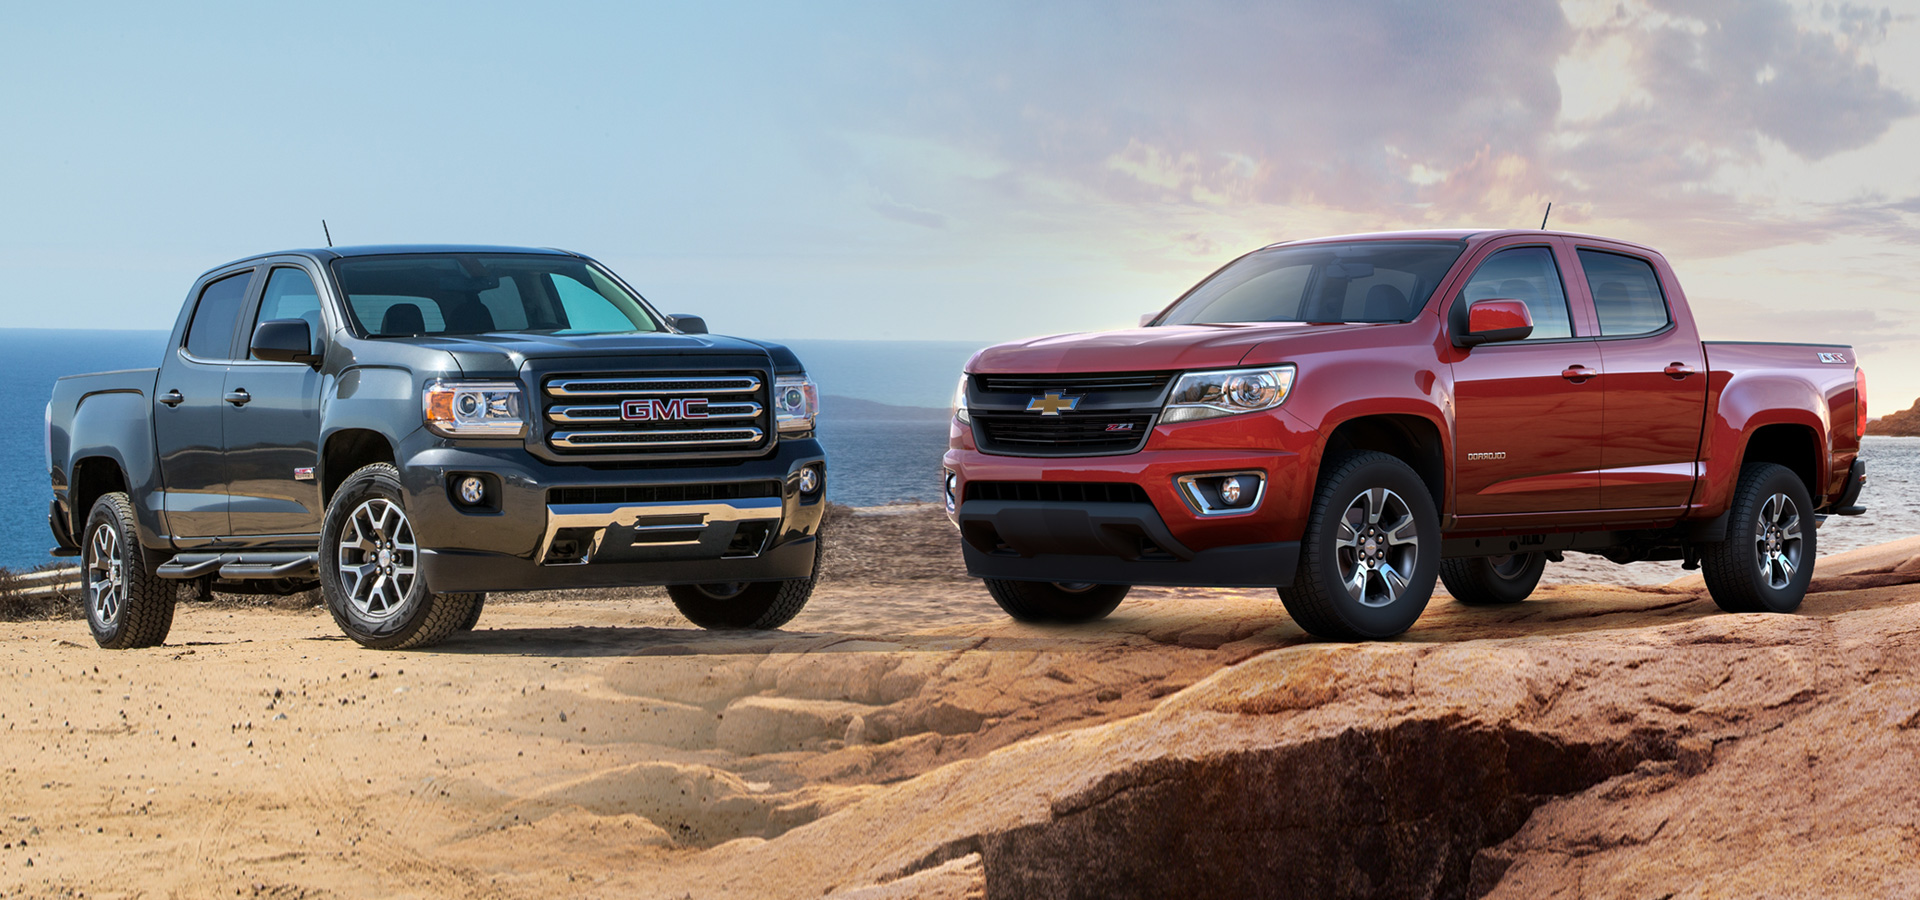 Gmc Canyon Vs Colorado - Seat Time: Chevrolet Colorado/GMC Canyon – John's Journal ...